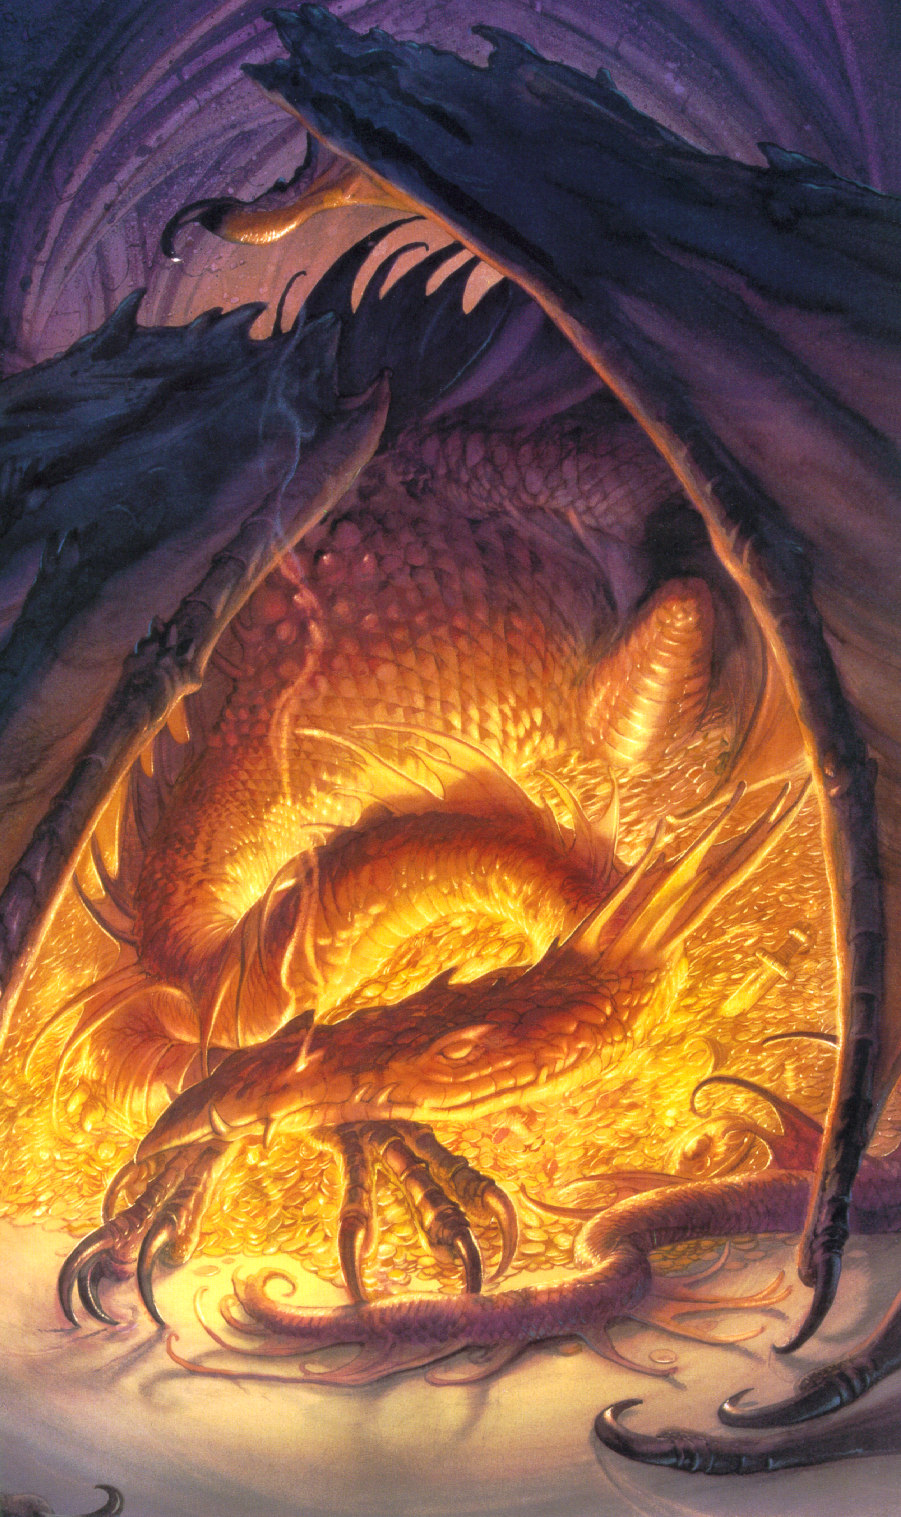 We all stand in awe of you o Smaug the Terrible!